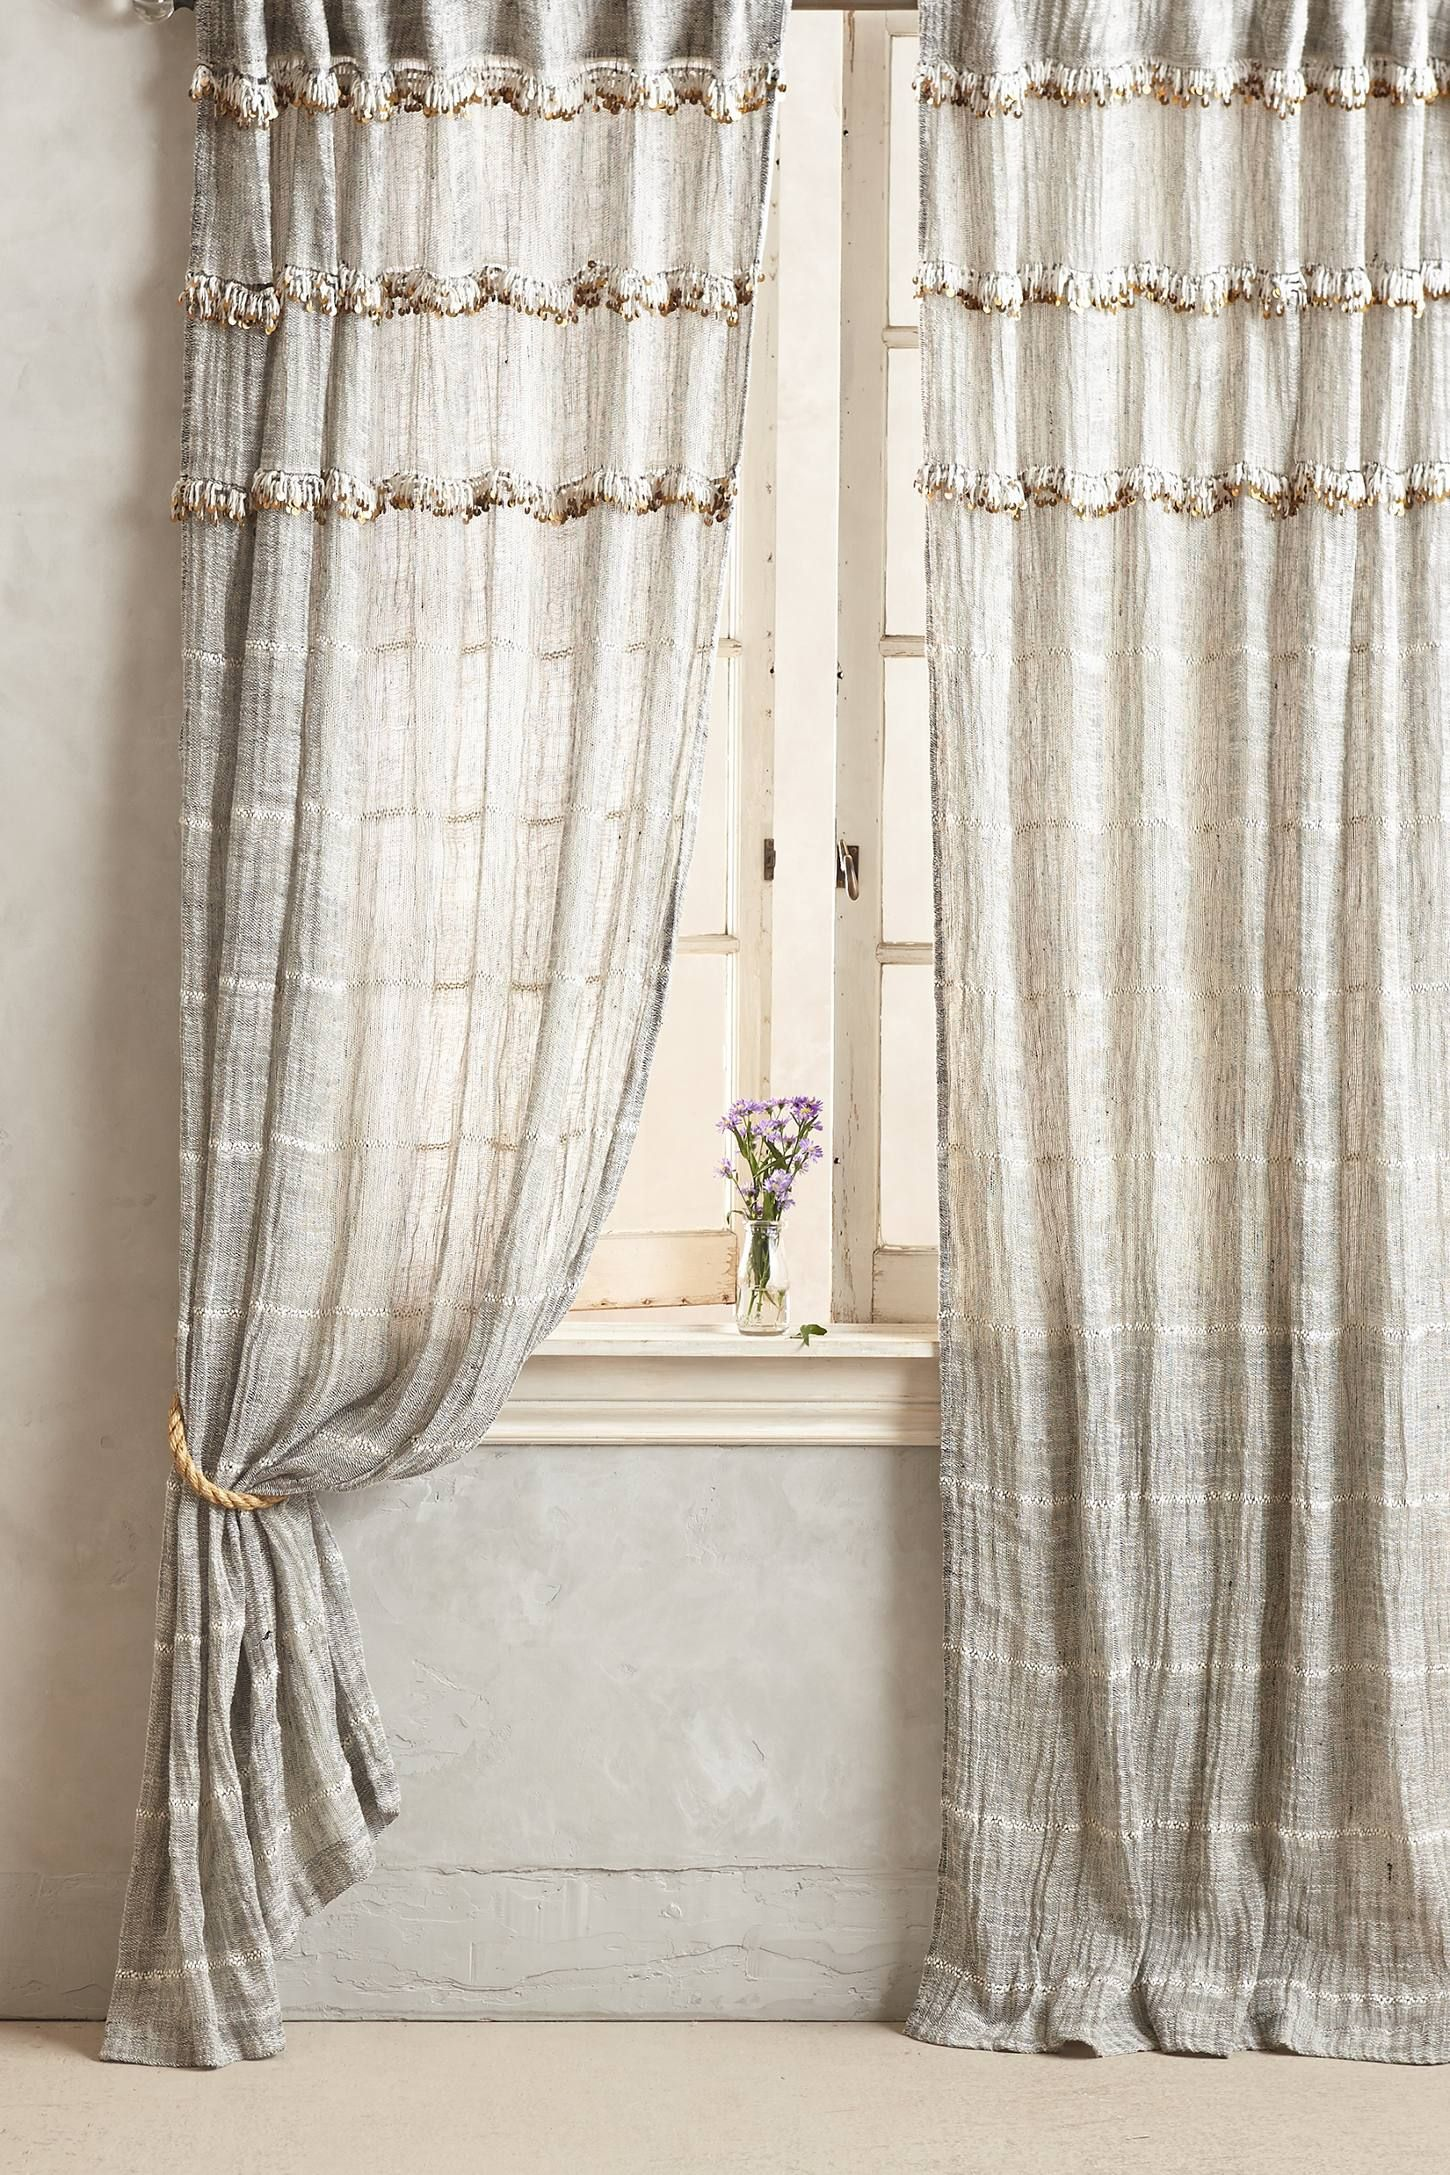 Shop The Graduated Tassel Curtain And More Anthropologie At Anthropologie Today Read Customer Reviews D Tassel Curtains Home Curtains Anthropologie Curtains